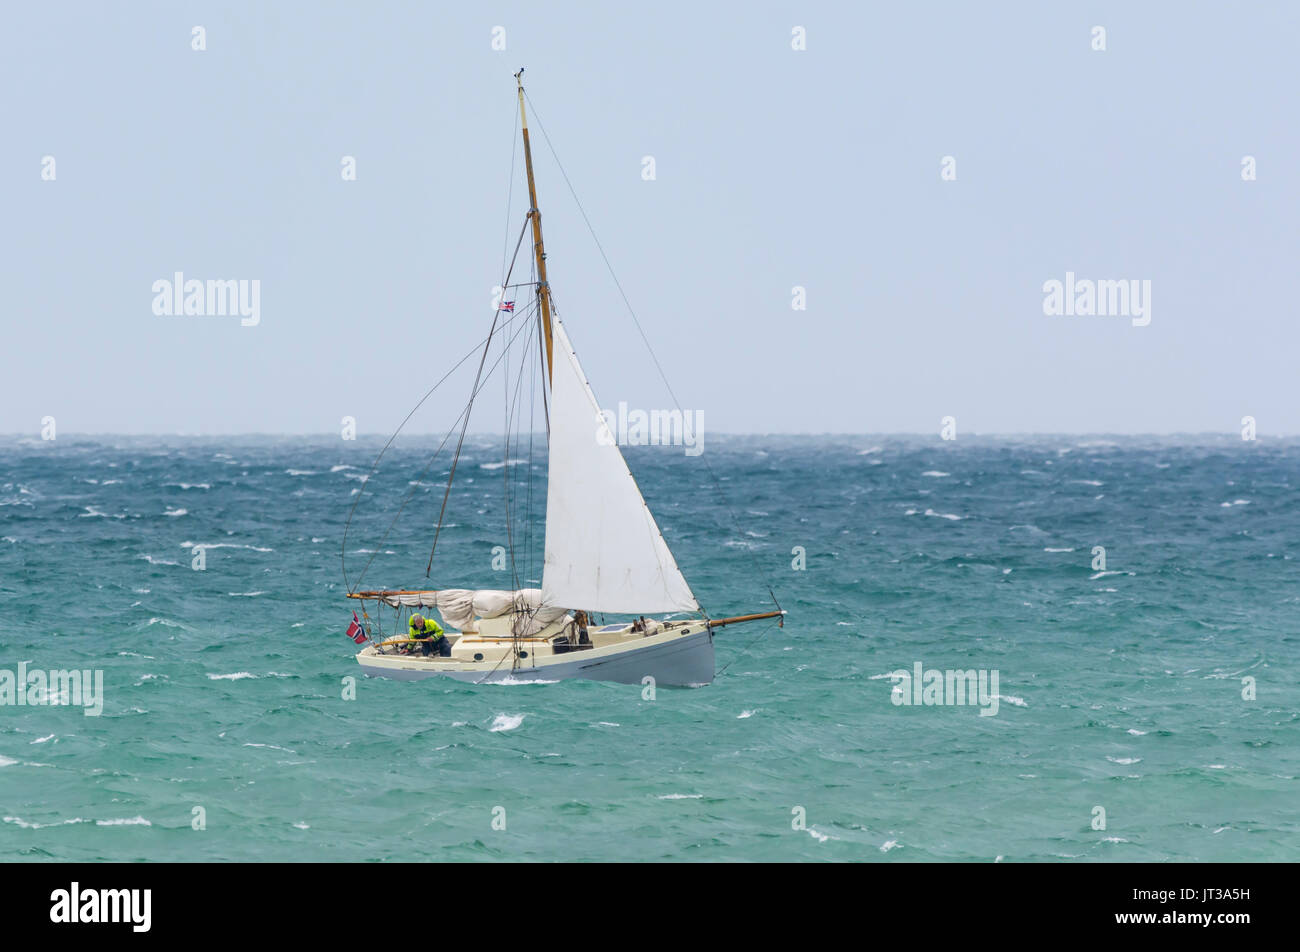 Small Sailing Boat On Rough Seas A Windy Day Yachts